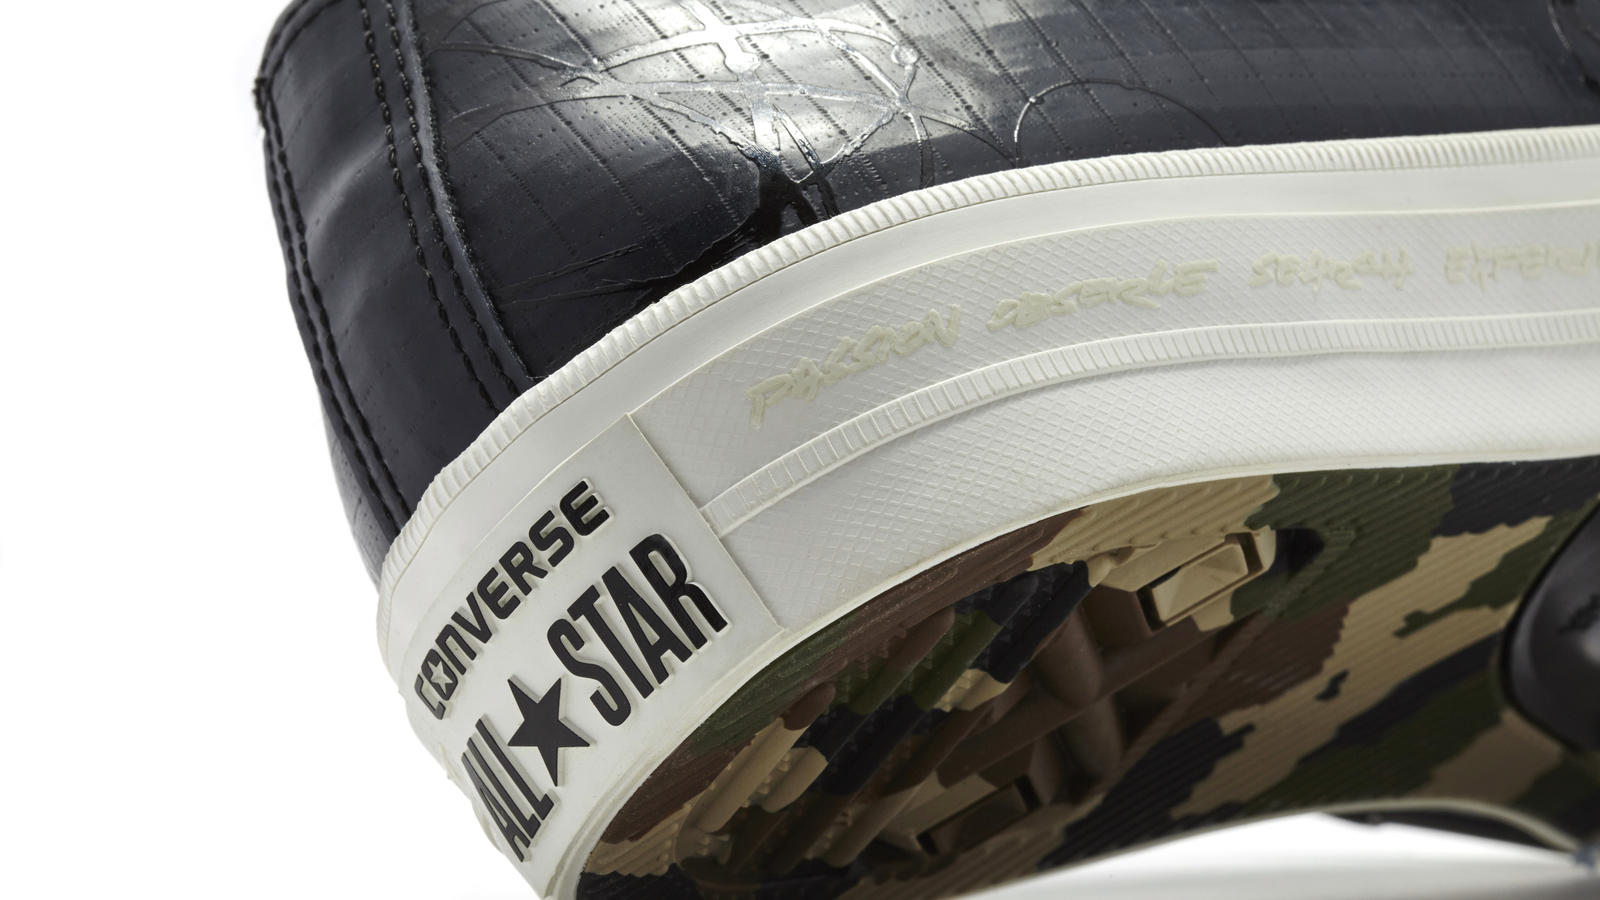 dc8c3617631c0 CONVERSE UNVEILS FIRST EVER CHUCK TAYLOR ALL STAR II COLLABORATION ...